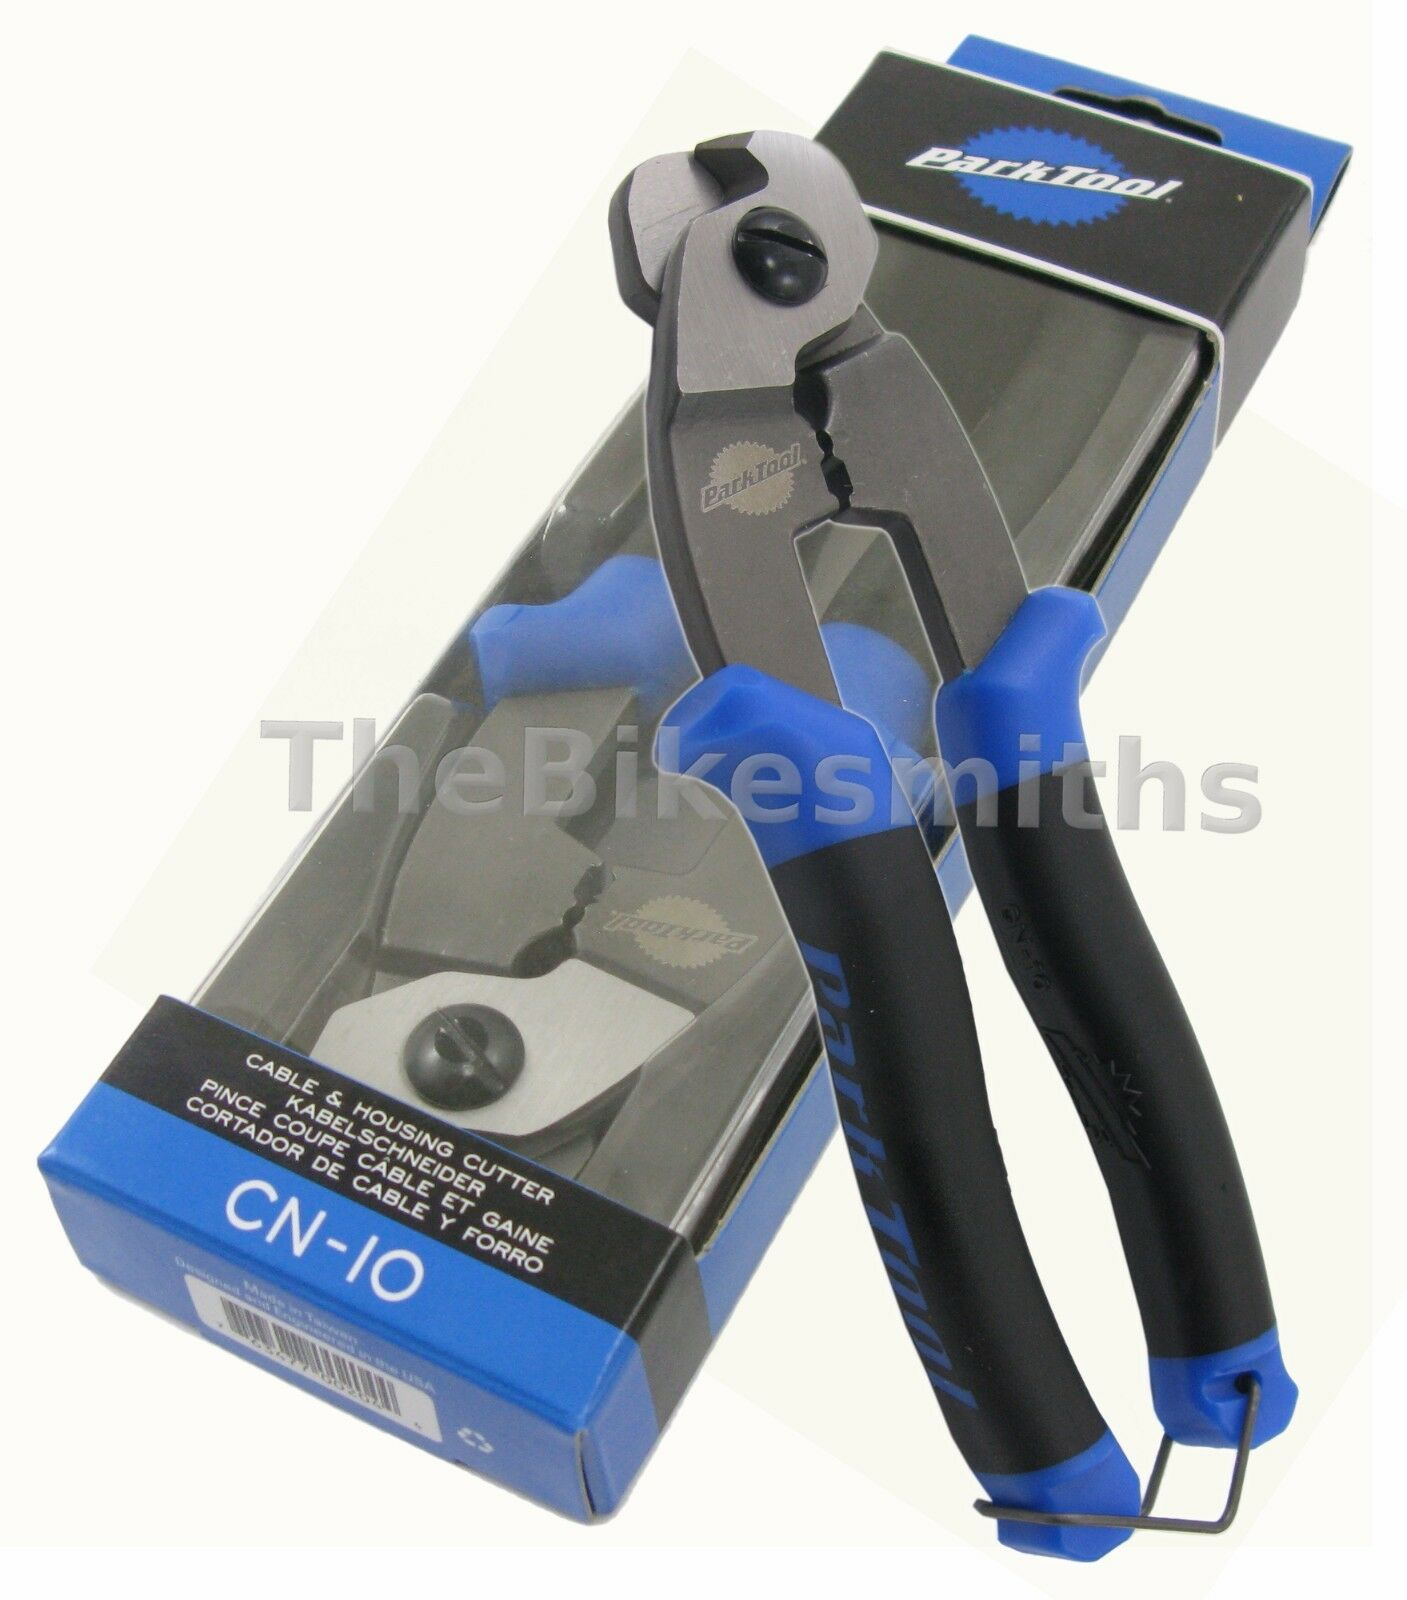 Park Tool CN-10 Pro Cable and Housing Cutter Tool New Bike Bicycle Wire Snipper